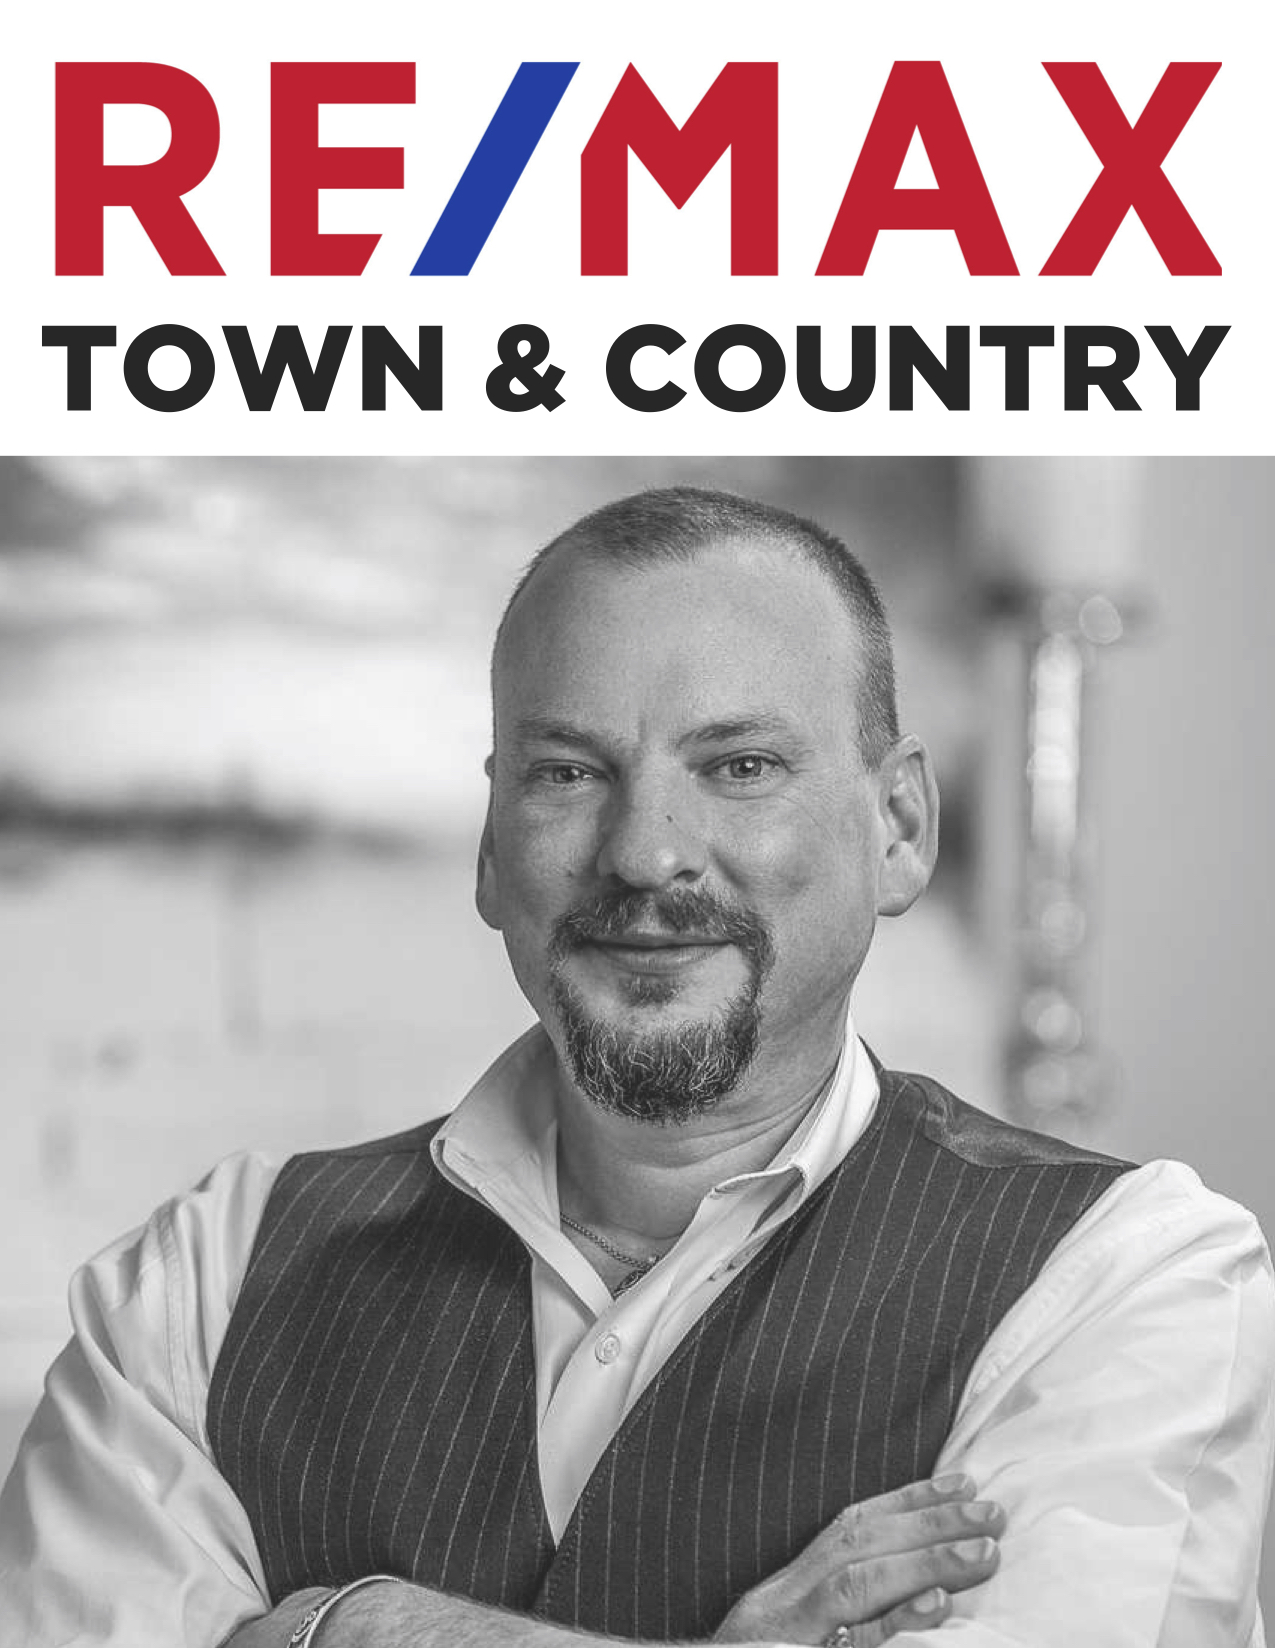 Who is the #1 REALTOR® in Fredericksburg TX